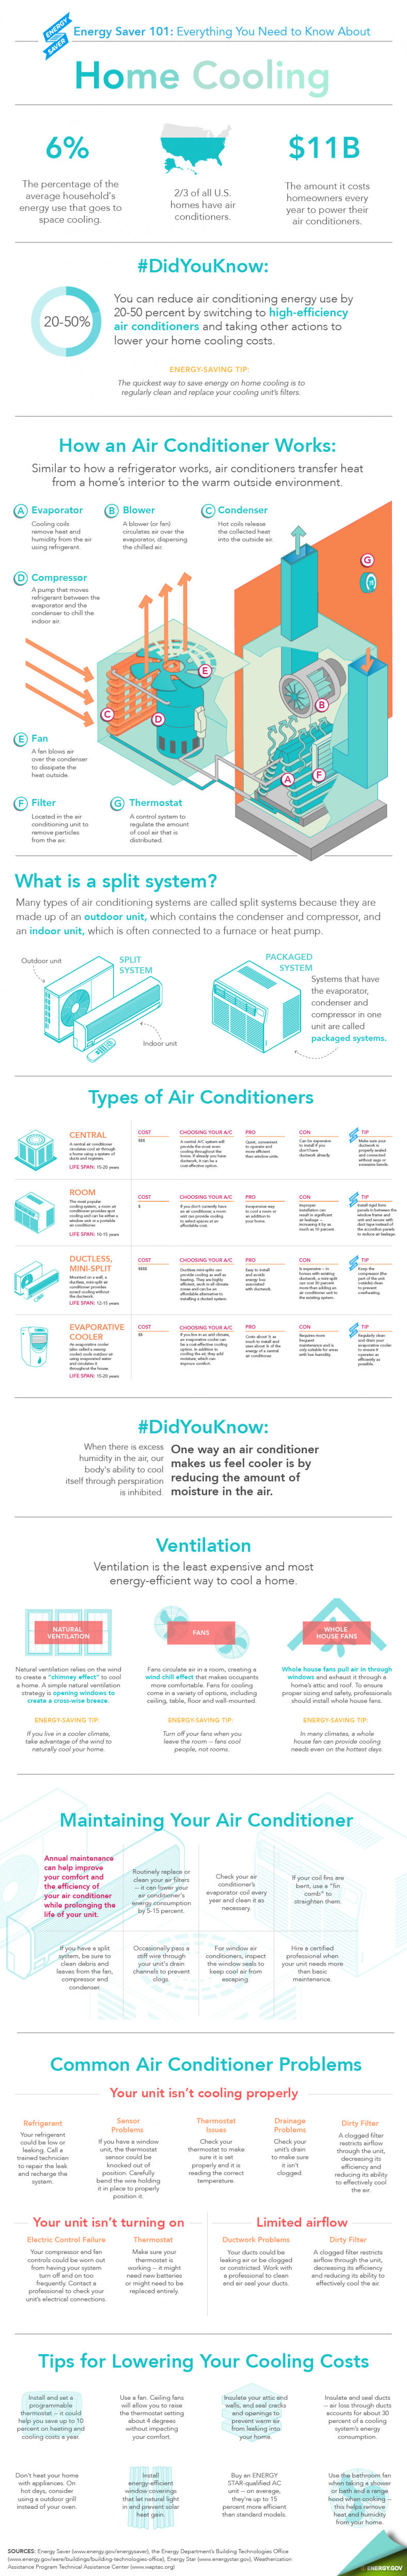 US Department of Energy Ductless Heat Pump vs. Air Conditioner Infographic